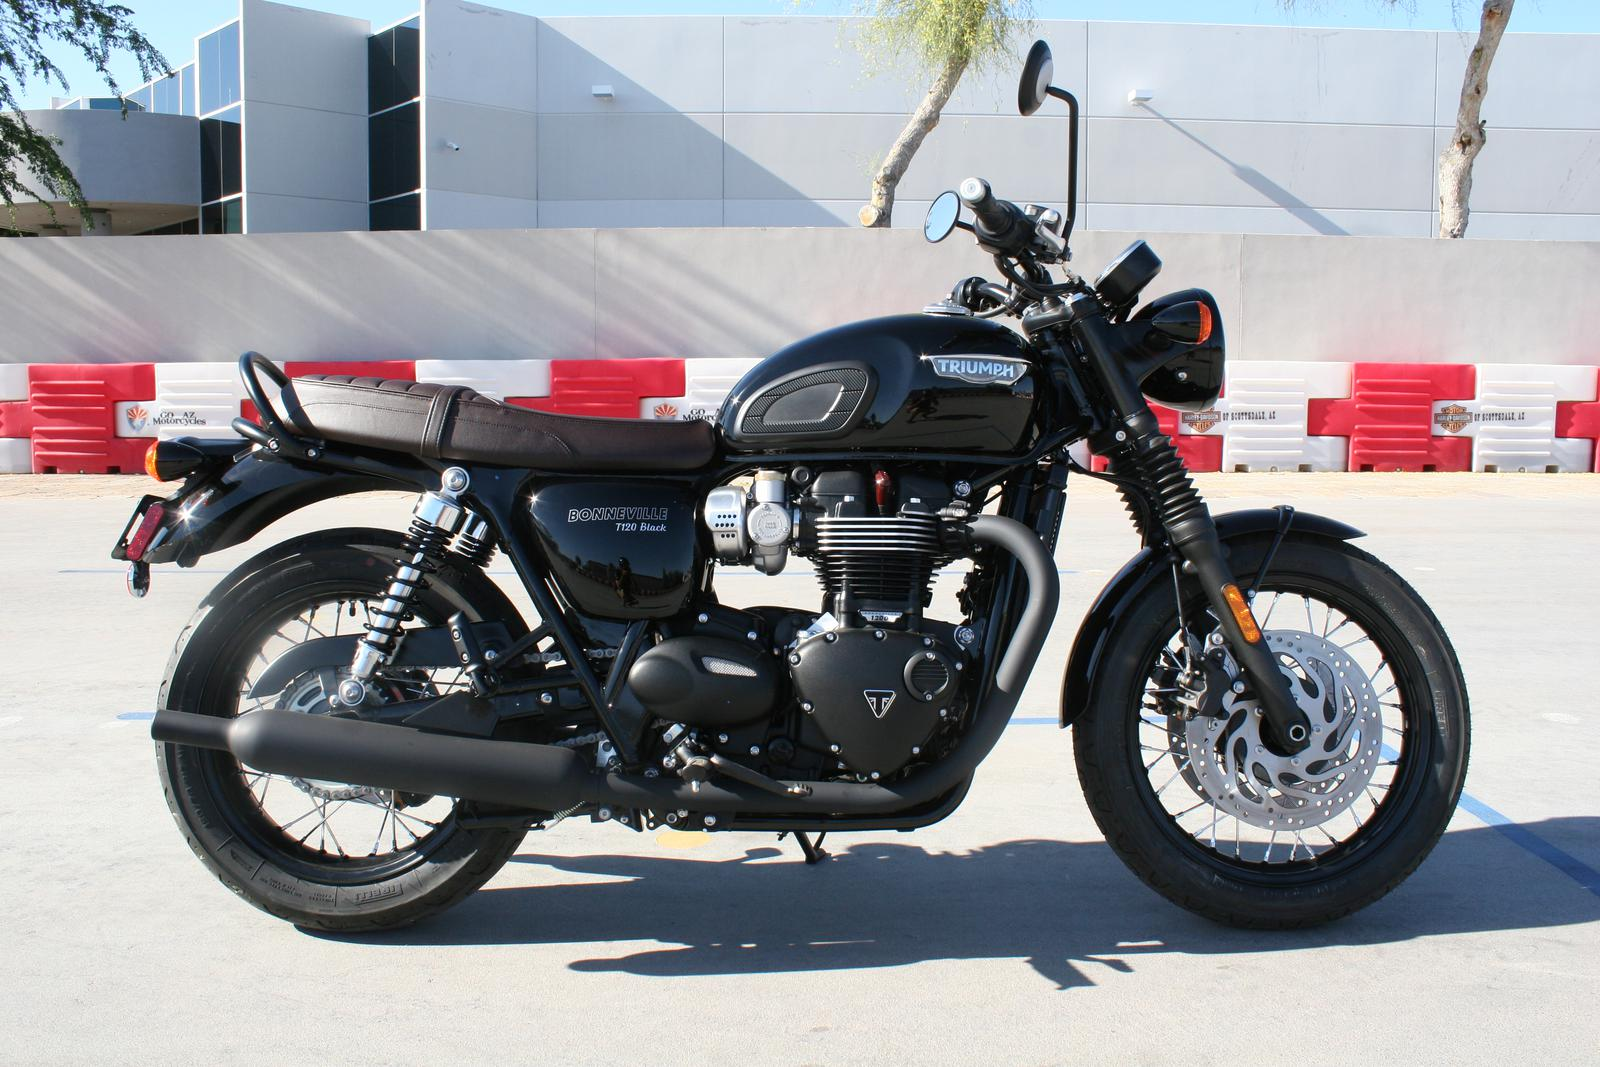 2019 Triumph Bonneville T120 Black For Sale In Scottsdale Az Go